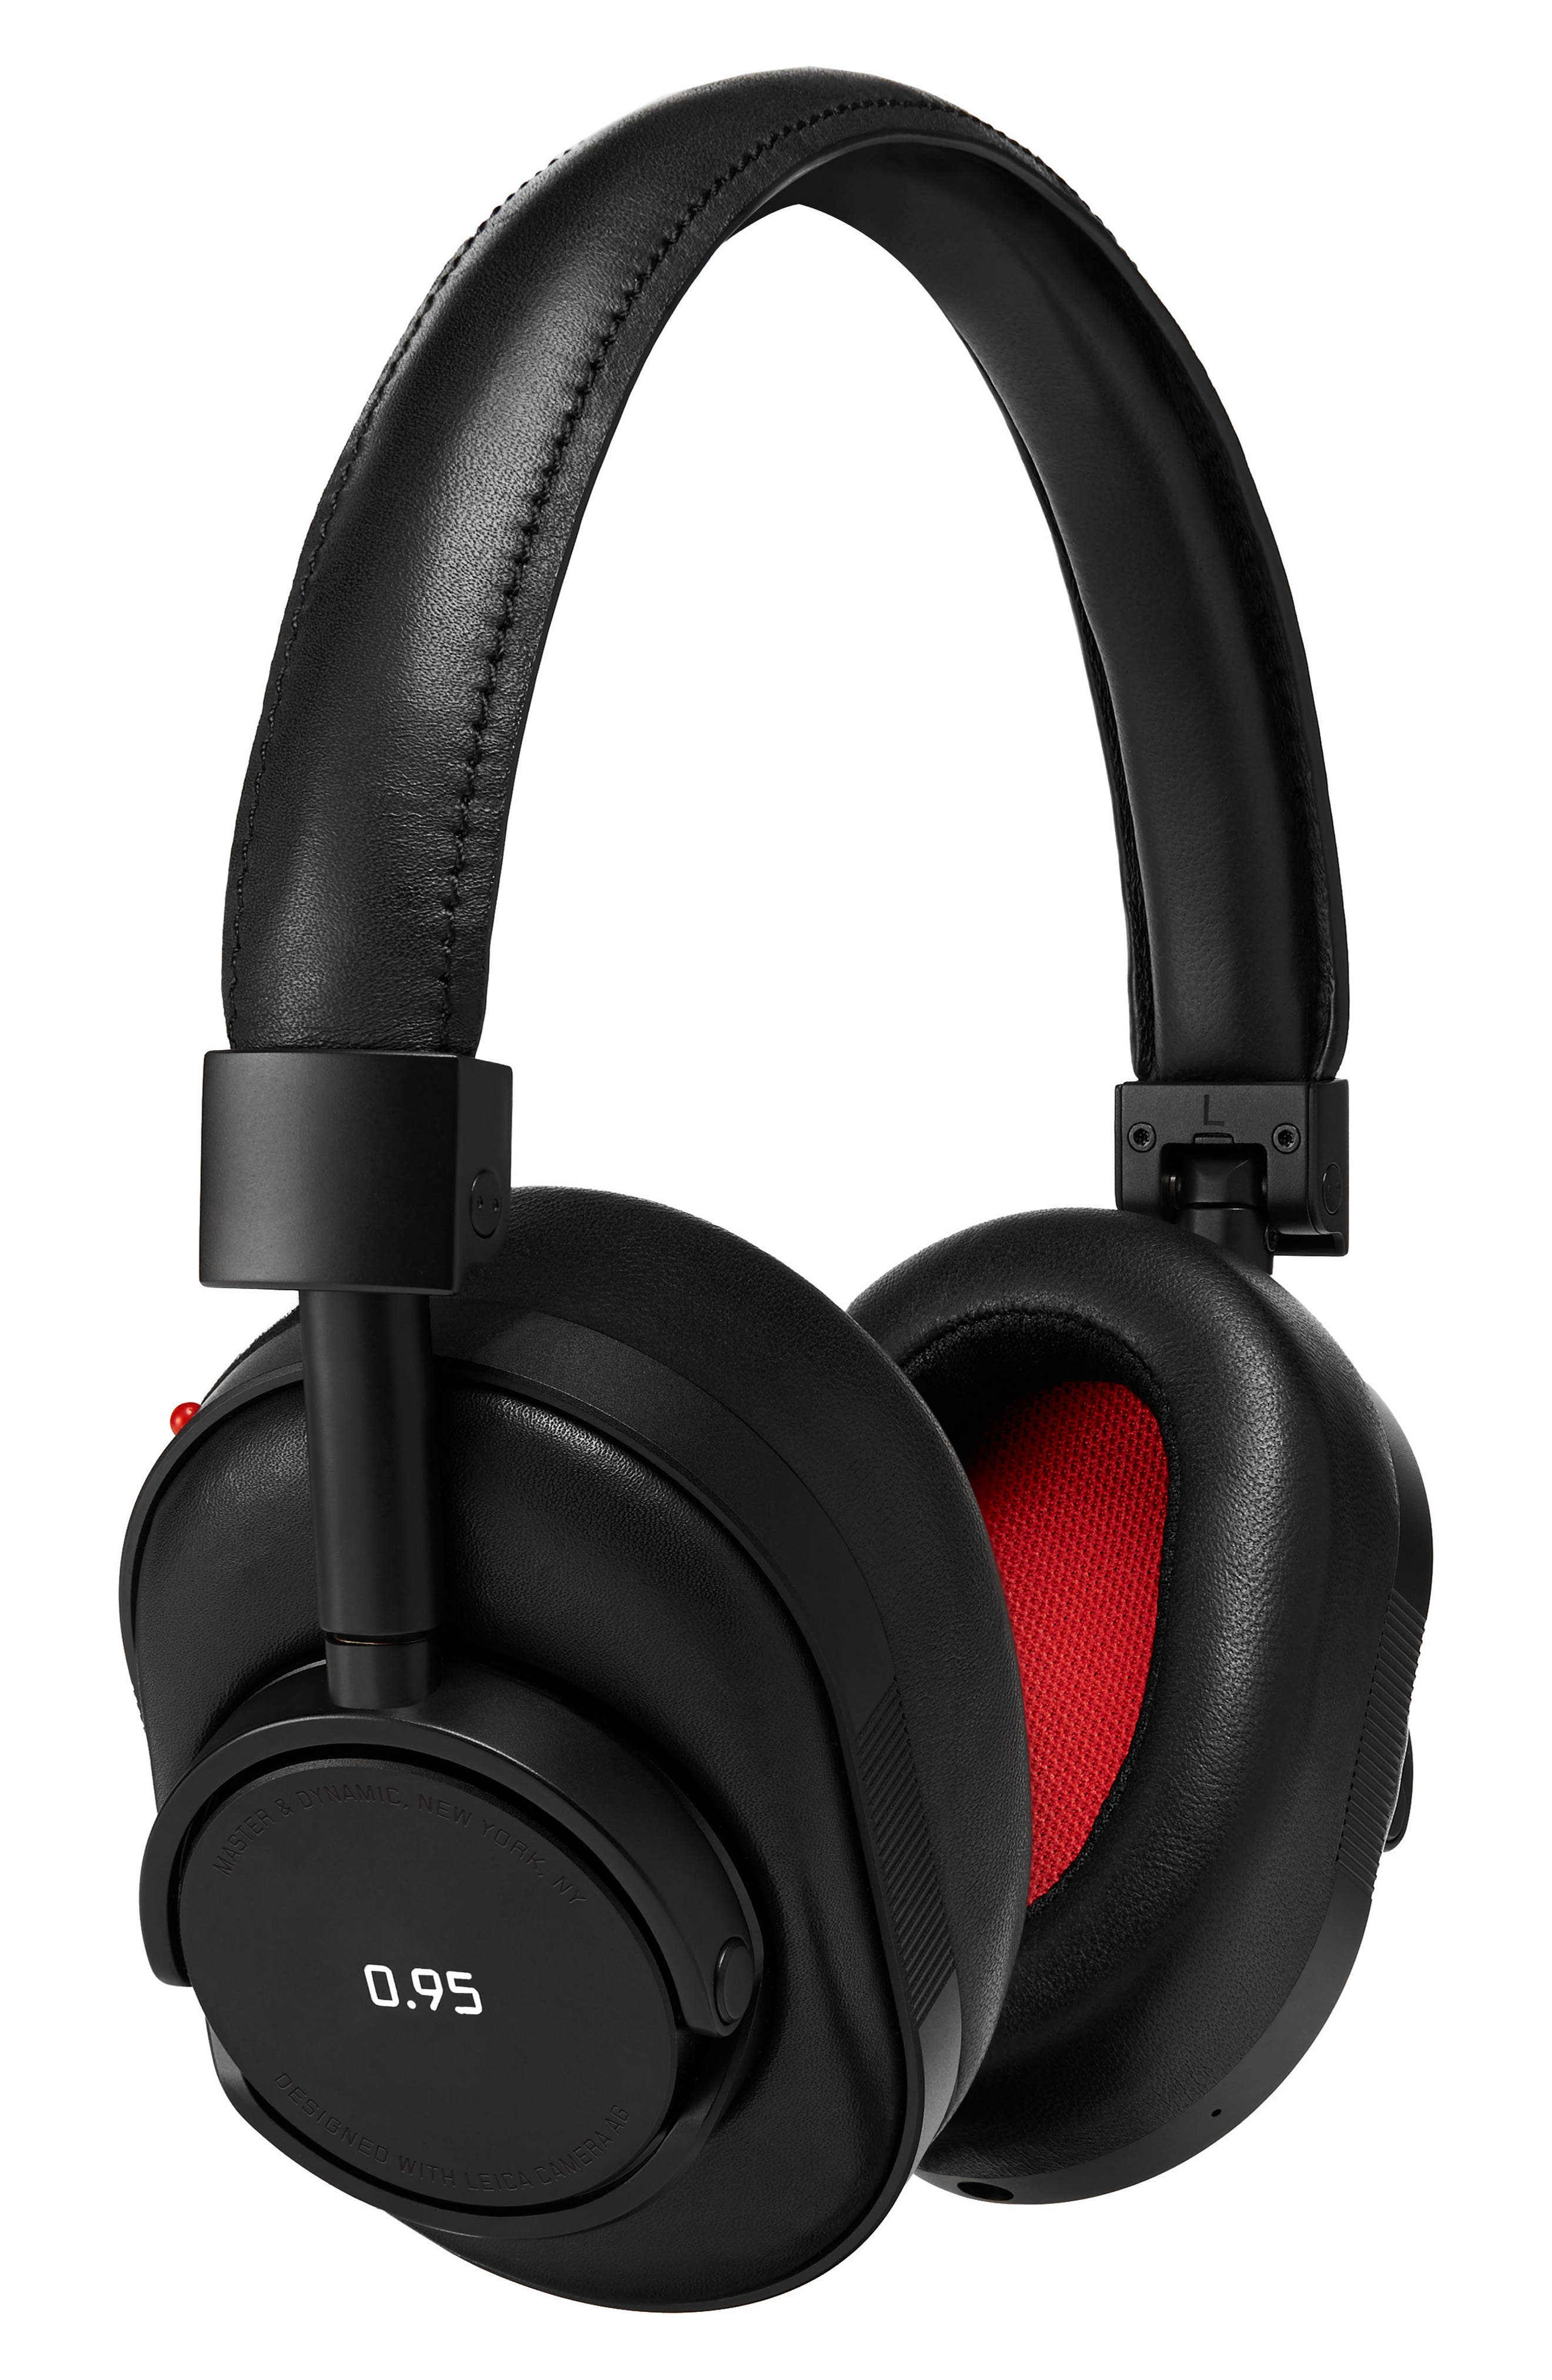 MW60 Wireless Leather Over Ear Headphones,                         Main,                         color, Black/ Black/ Red